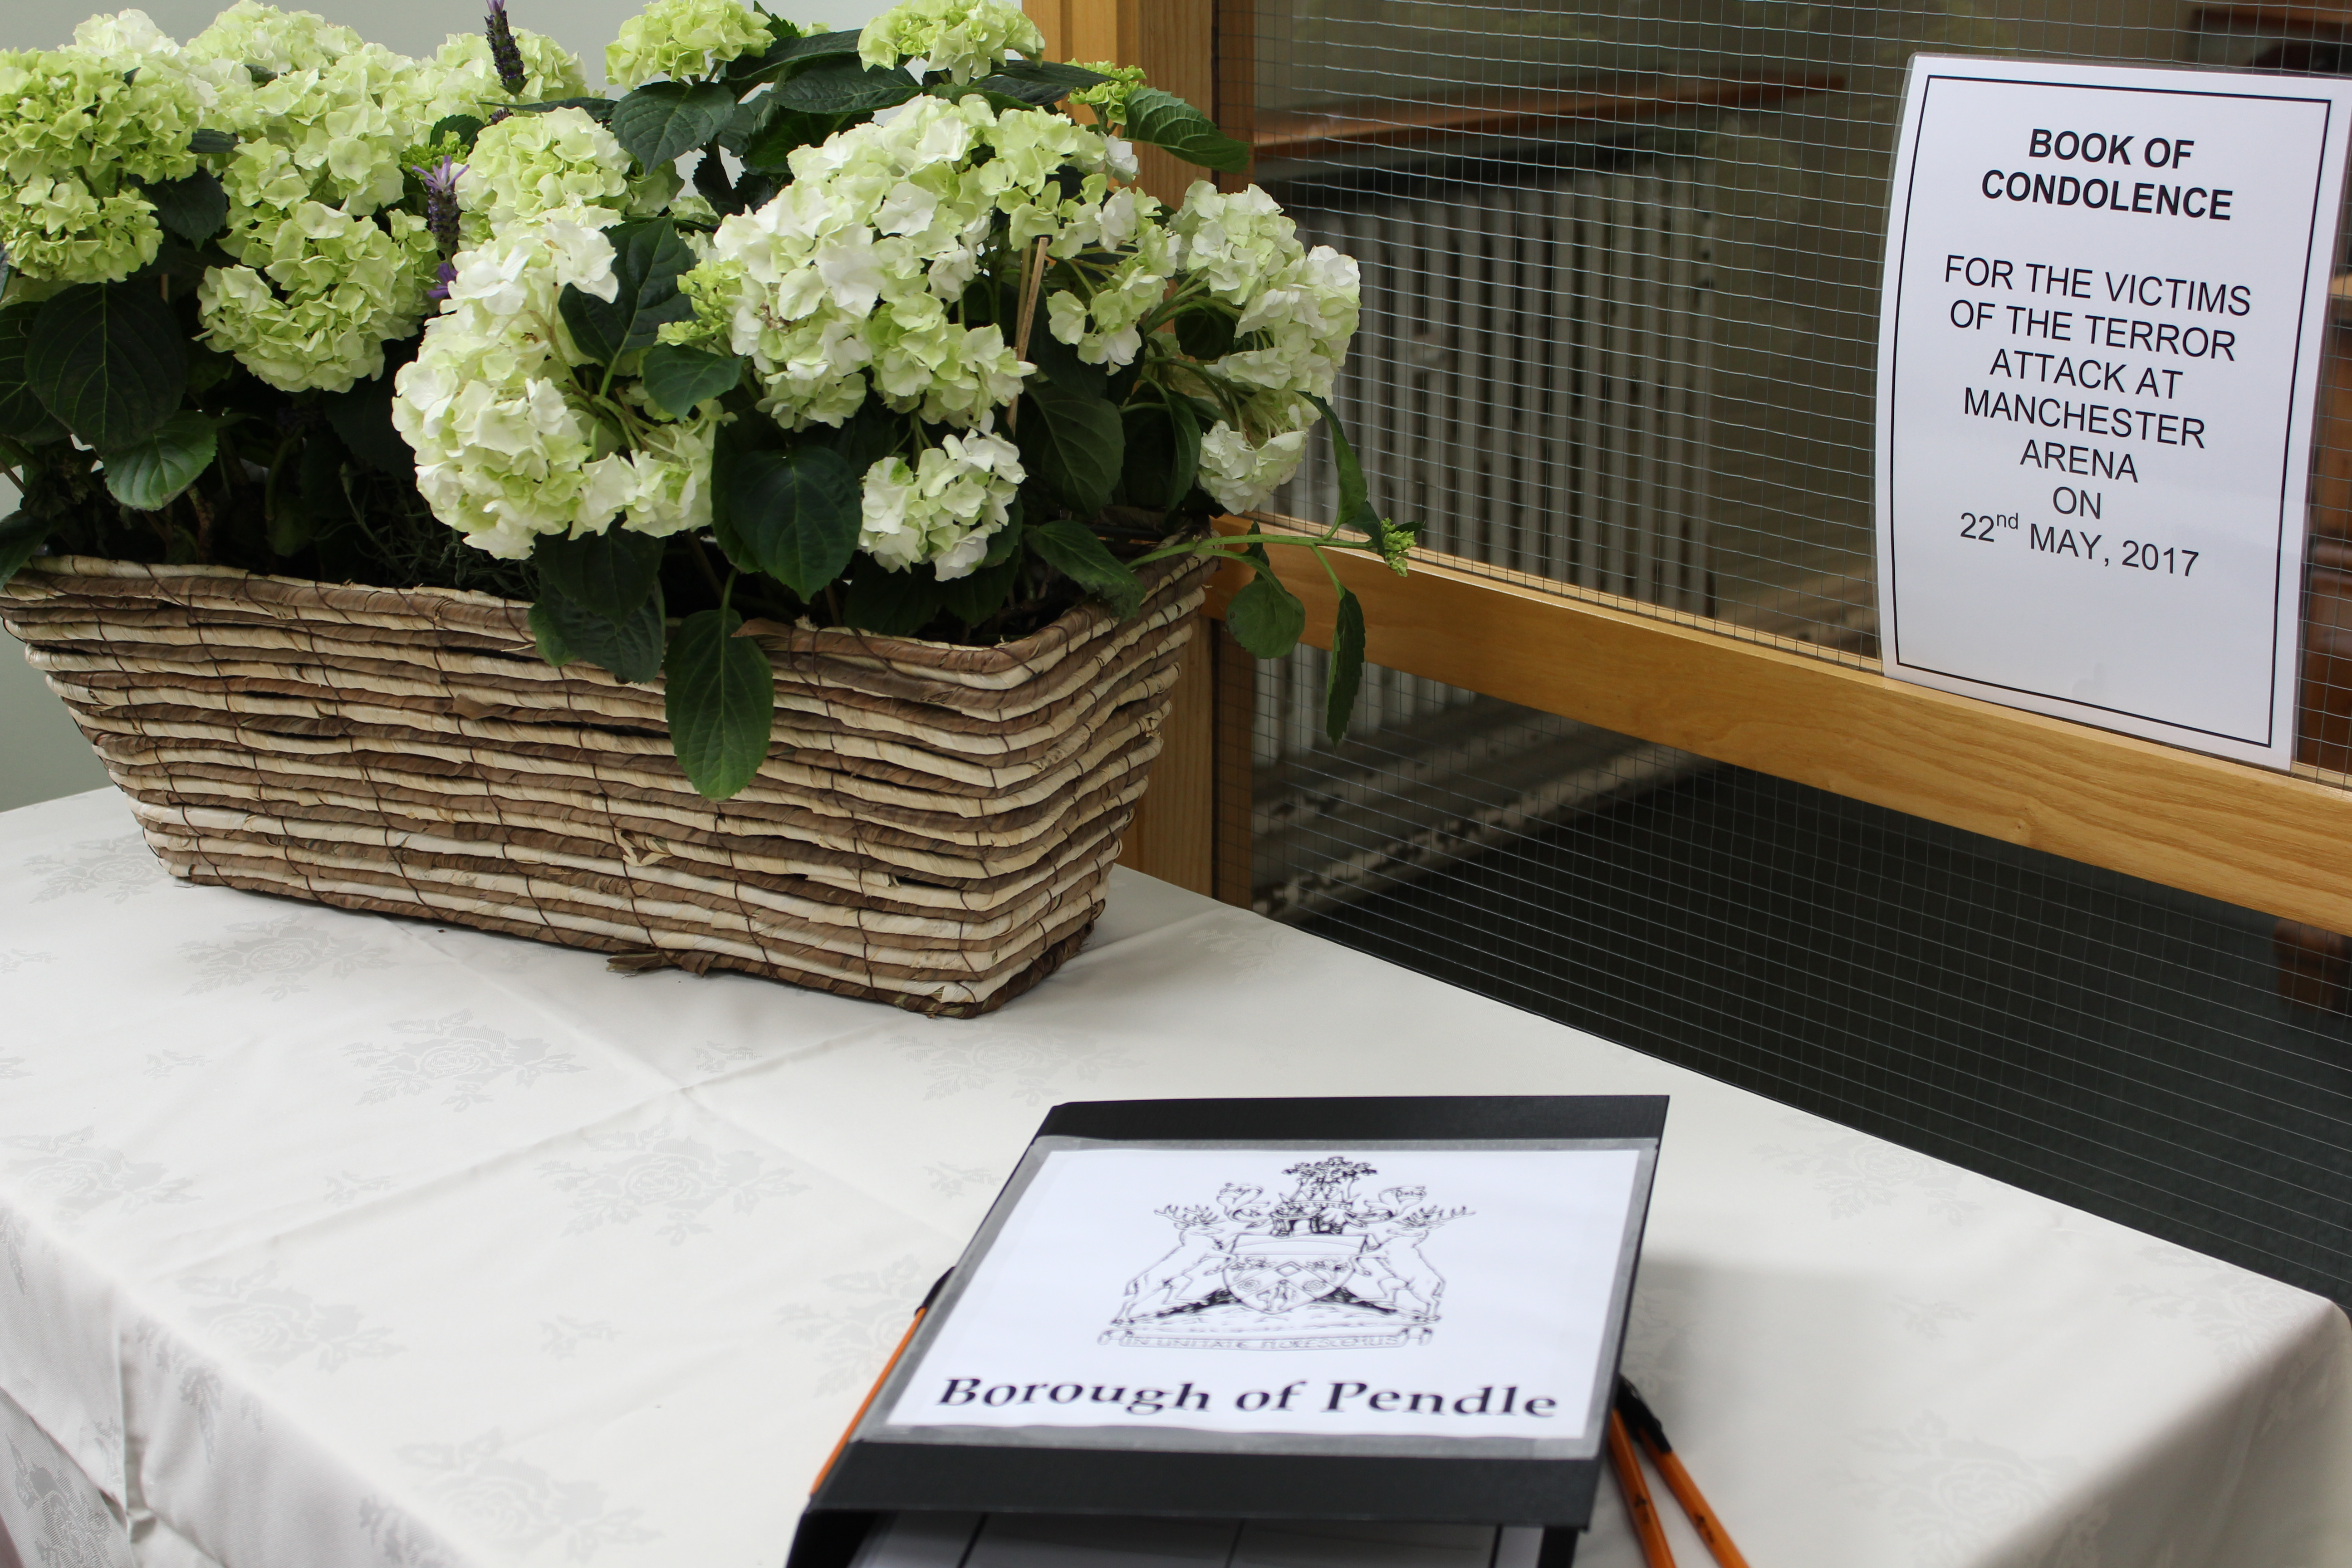 Pendle people invited to express condolences for attack victims.